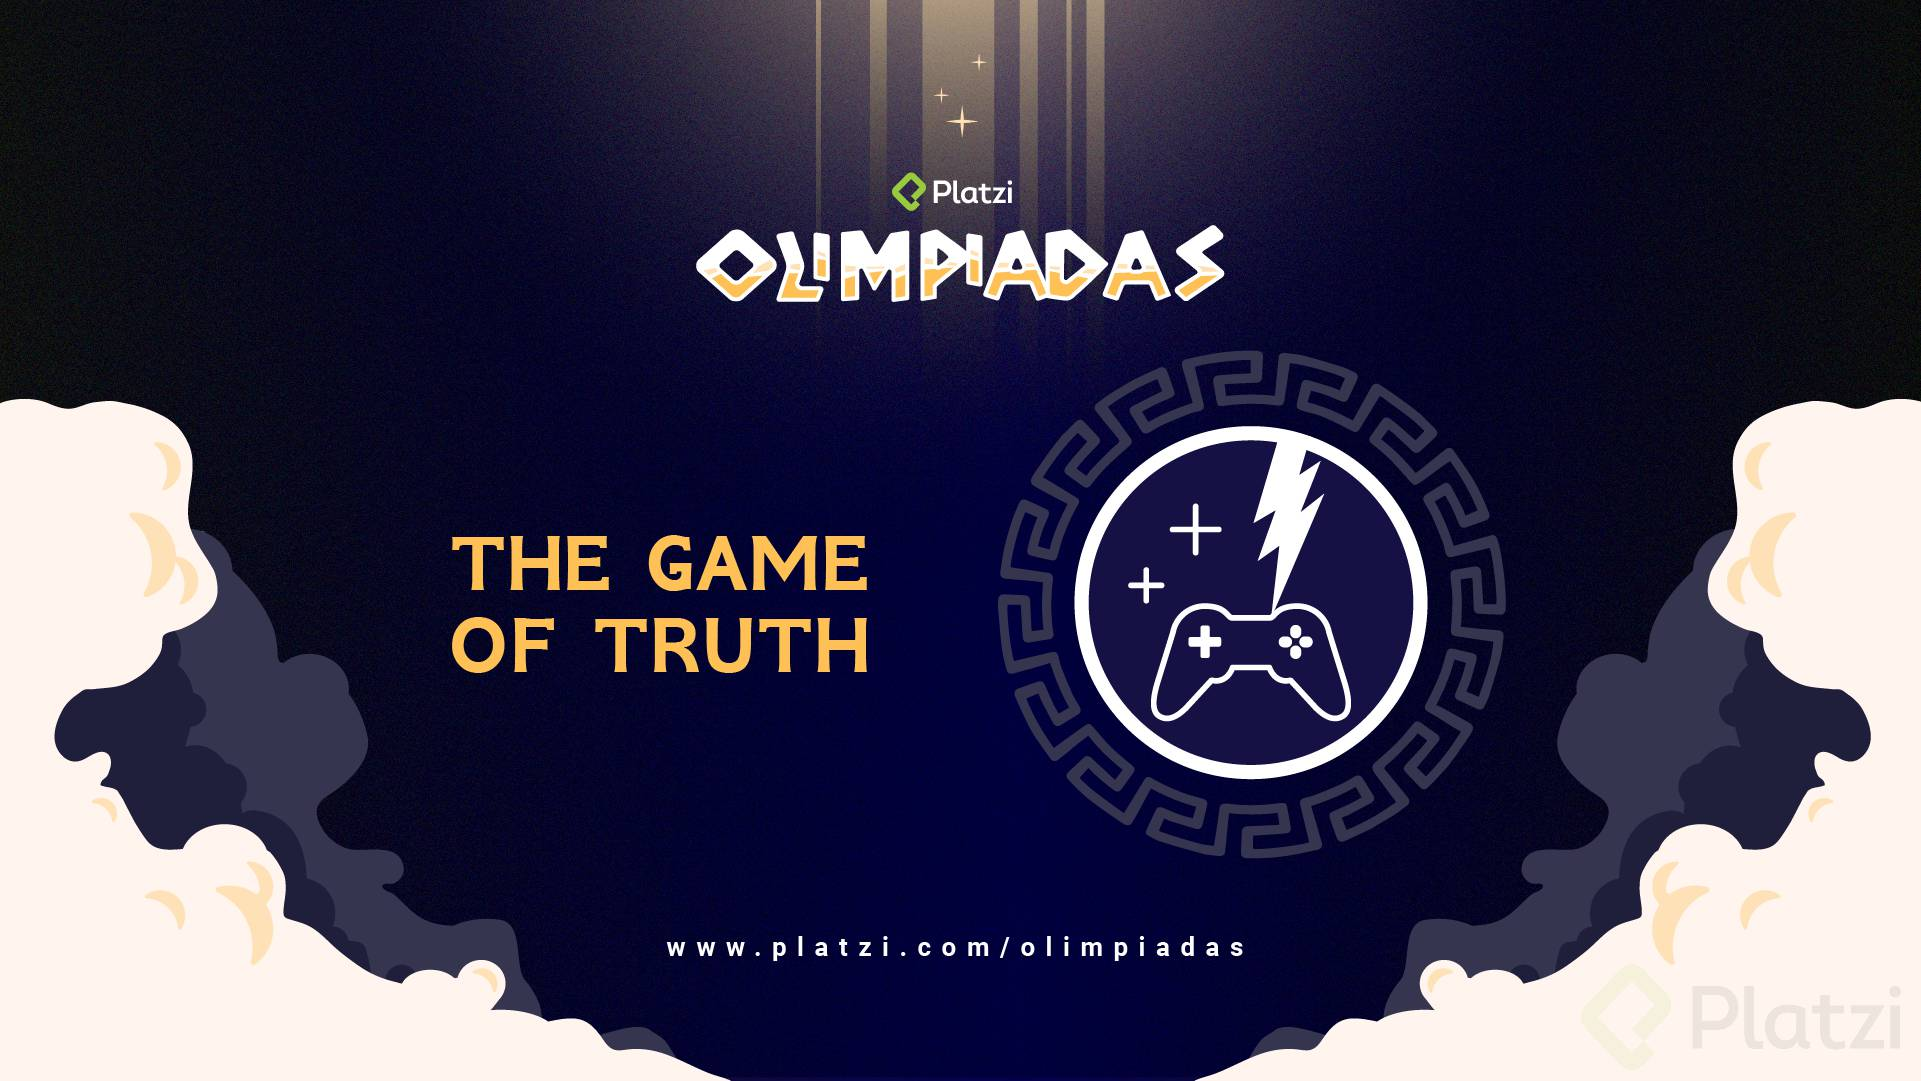 Olimpiadas_Game_Truth_Wallpaper.png